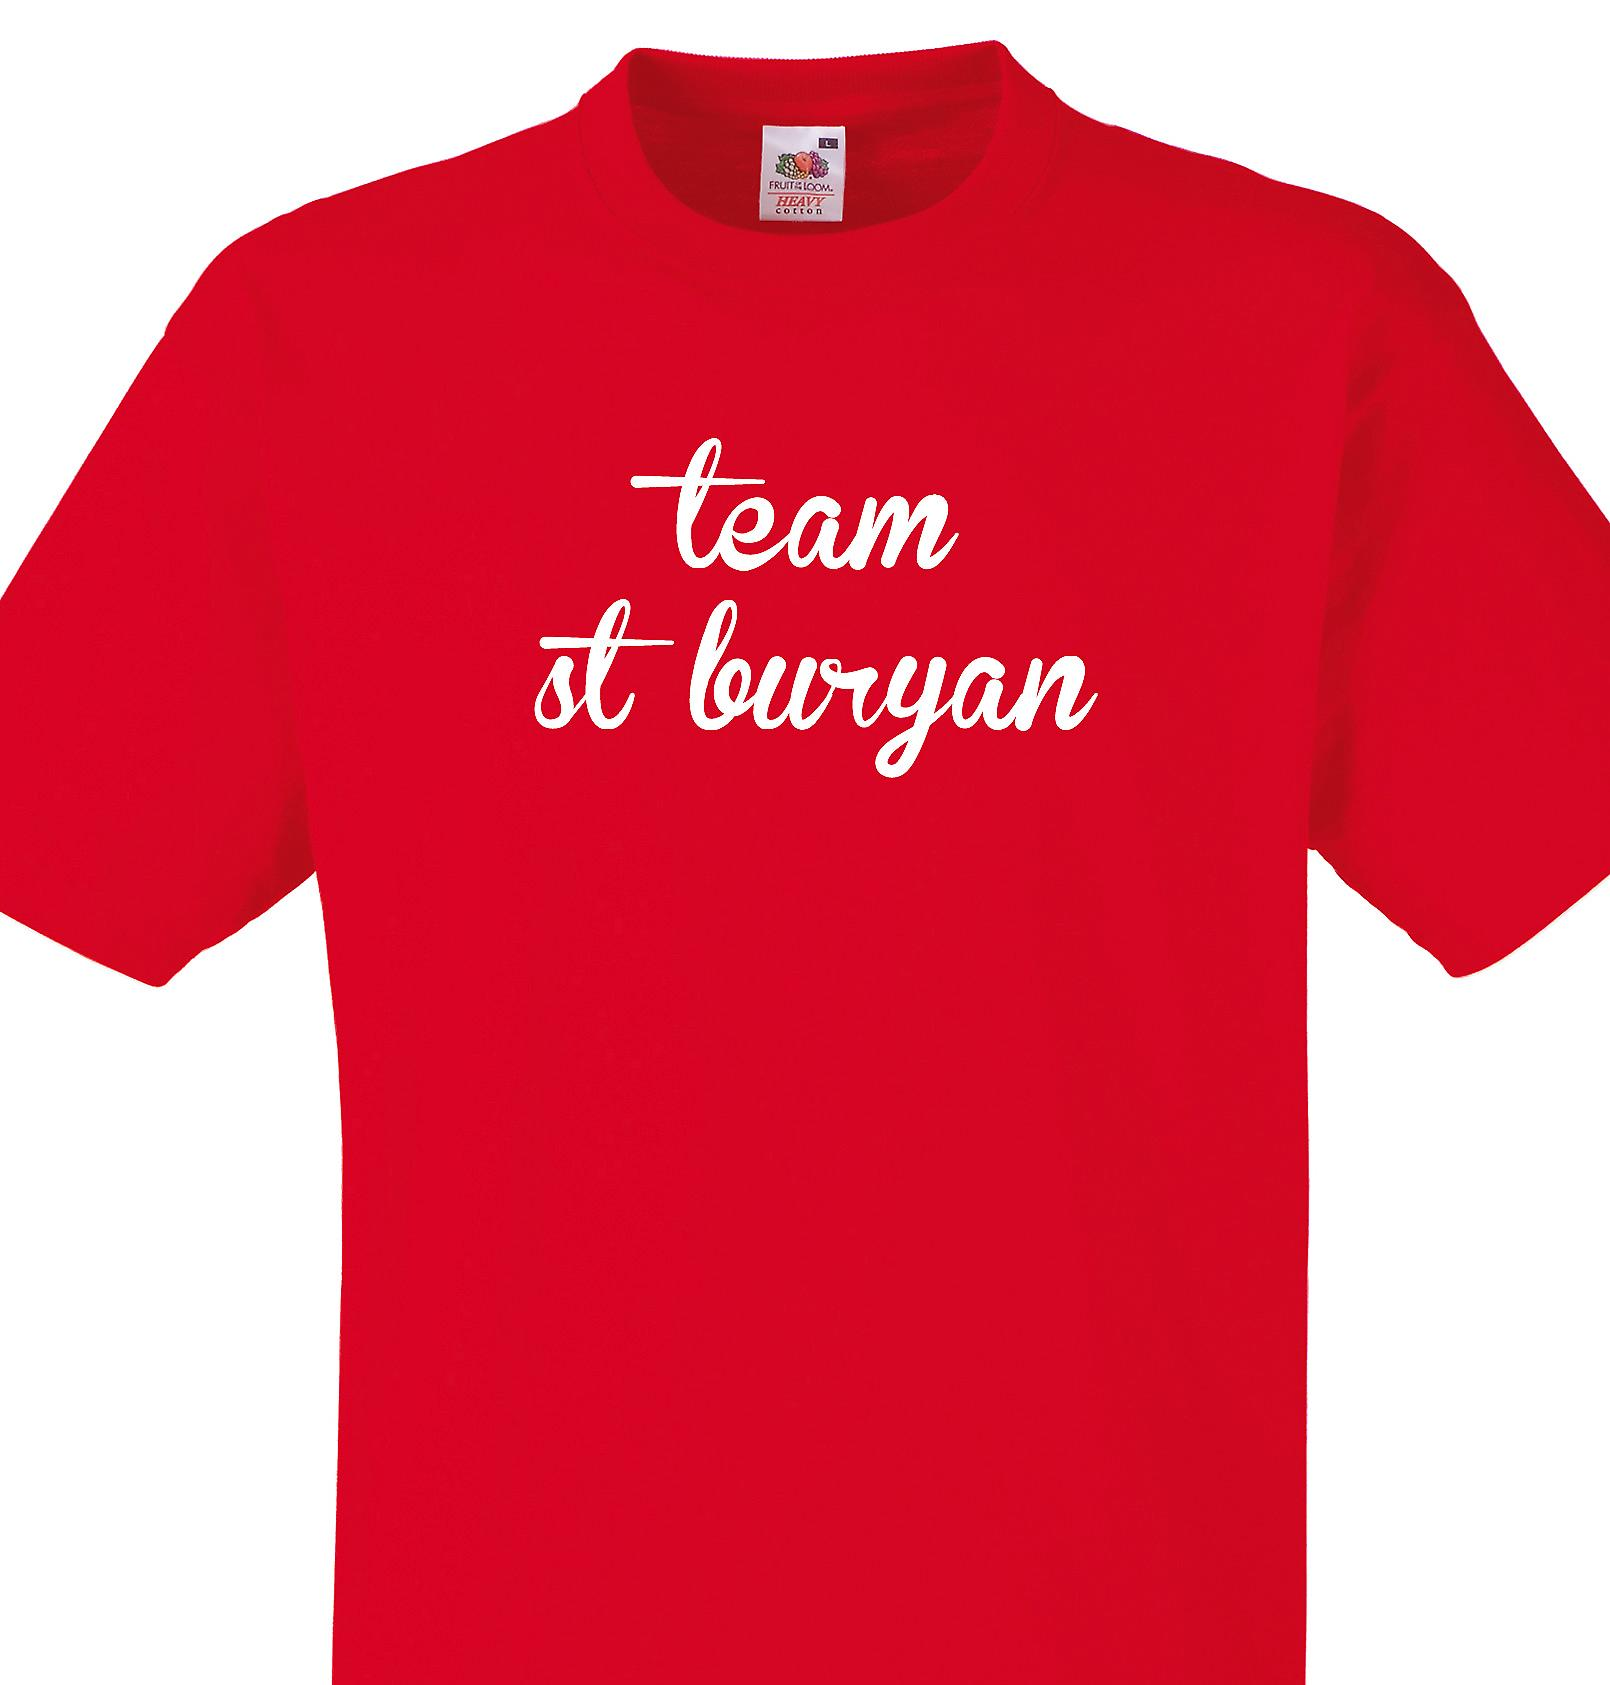 Team St buryan Red T shirt